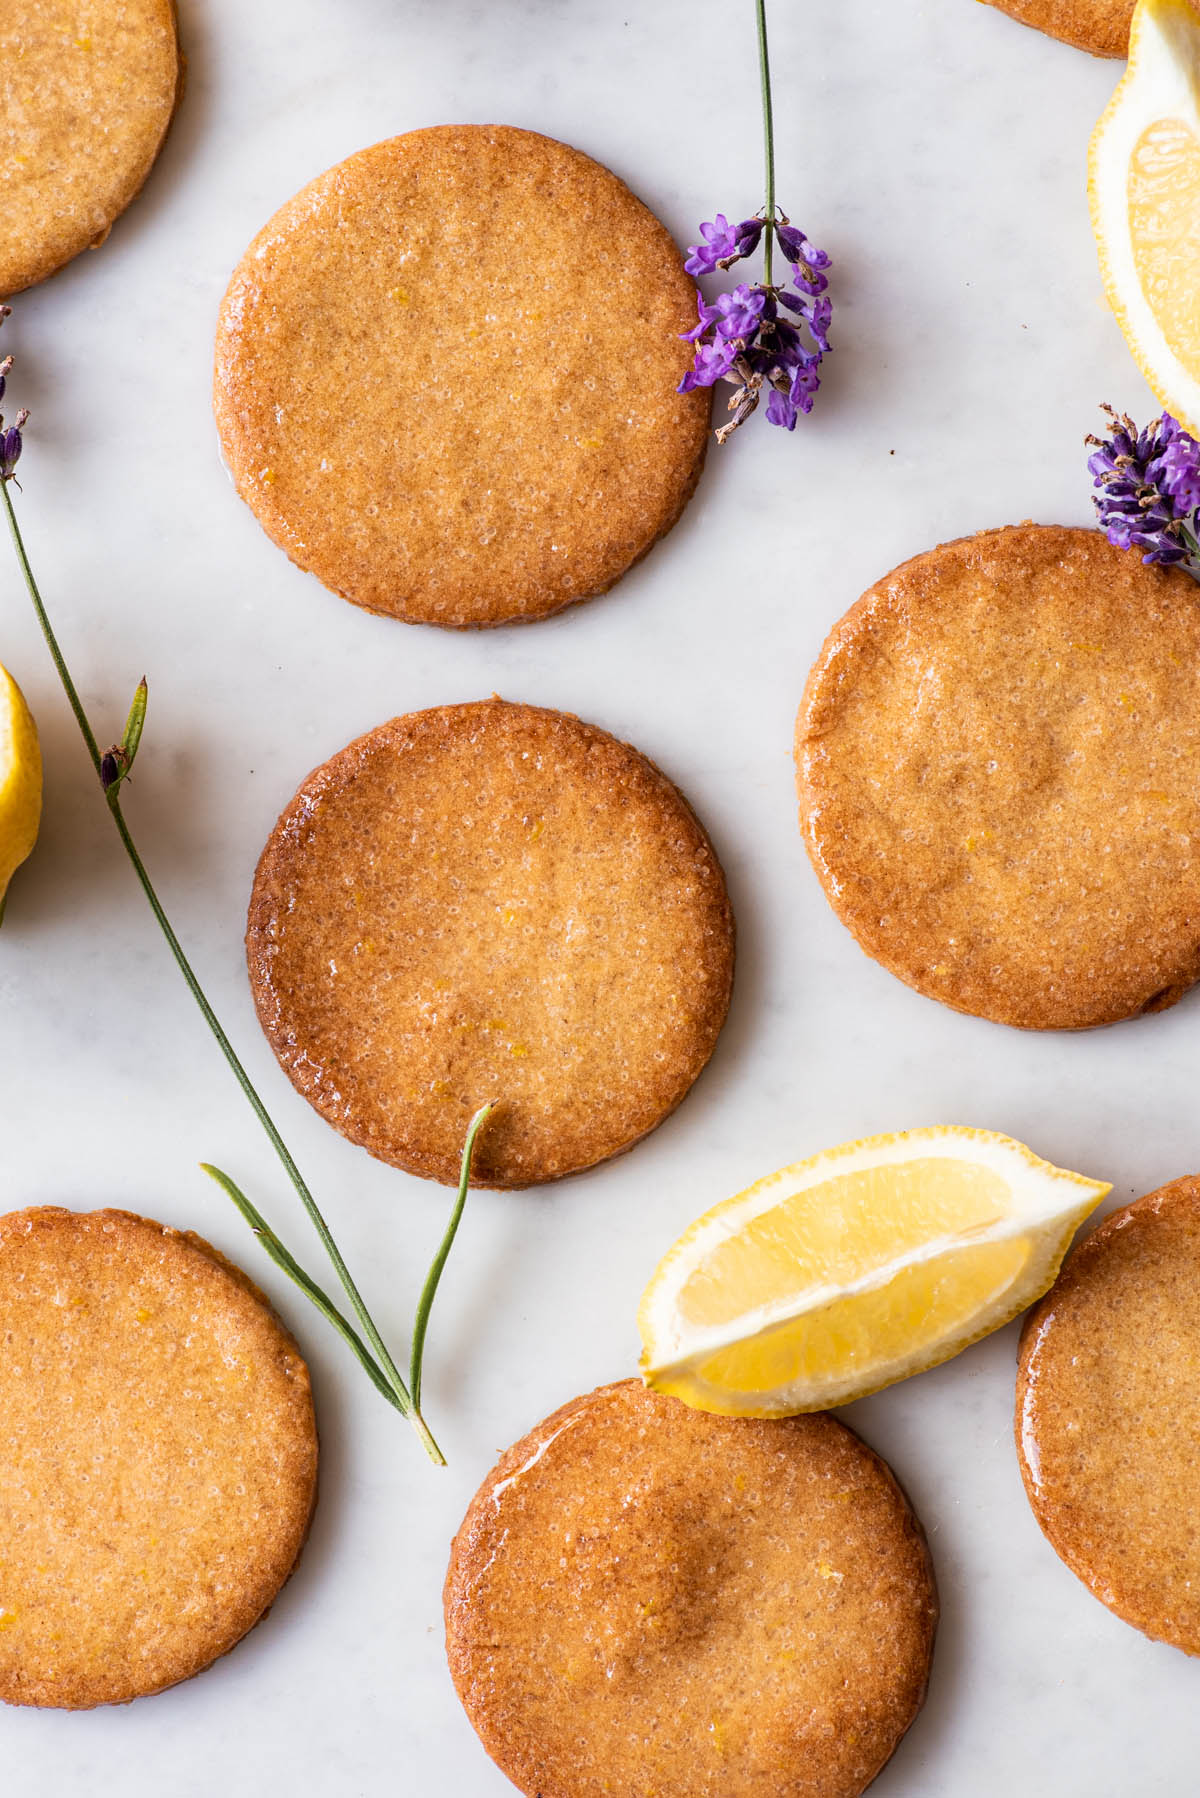 Sugar cookies on a marble surface with lemon slices and lavender sprigs.